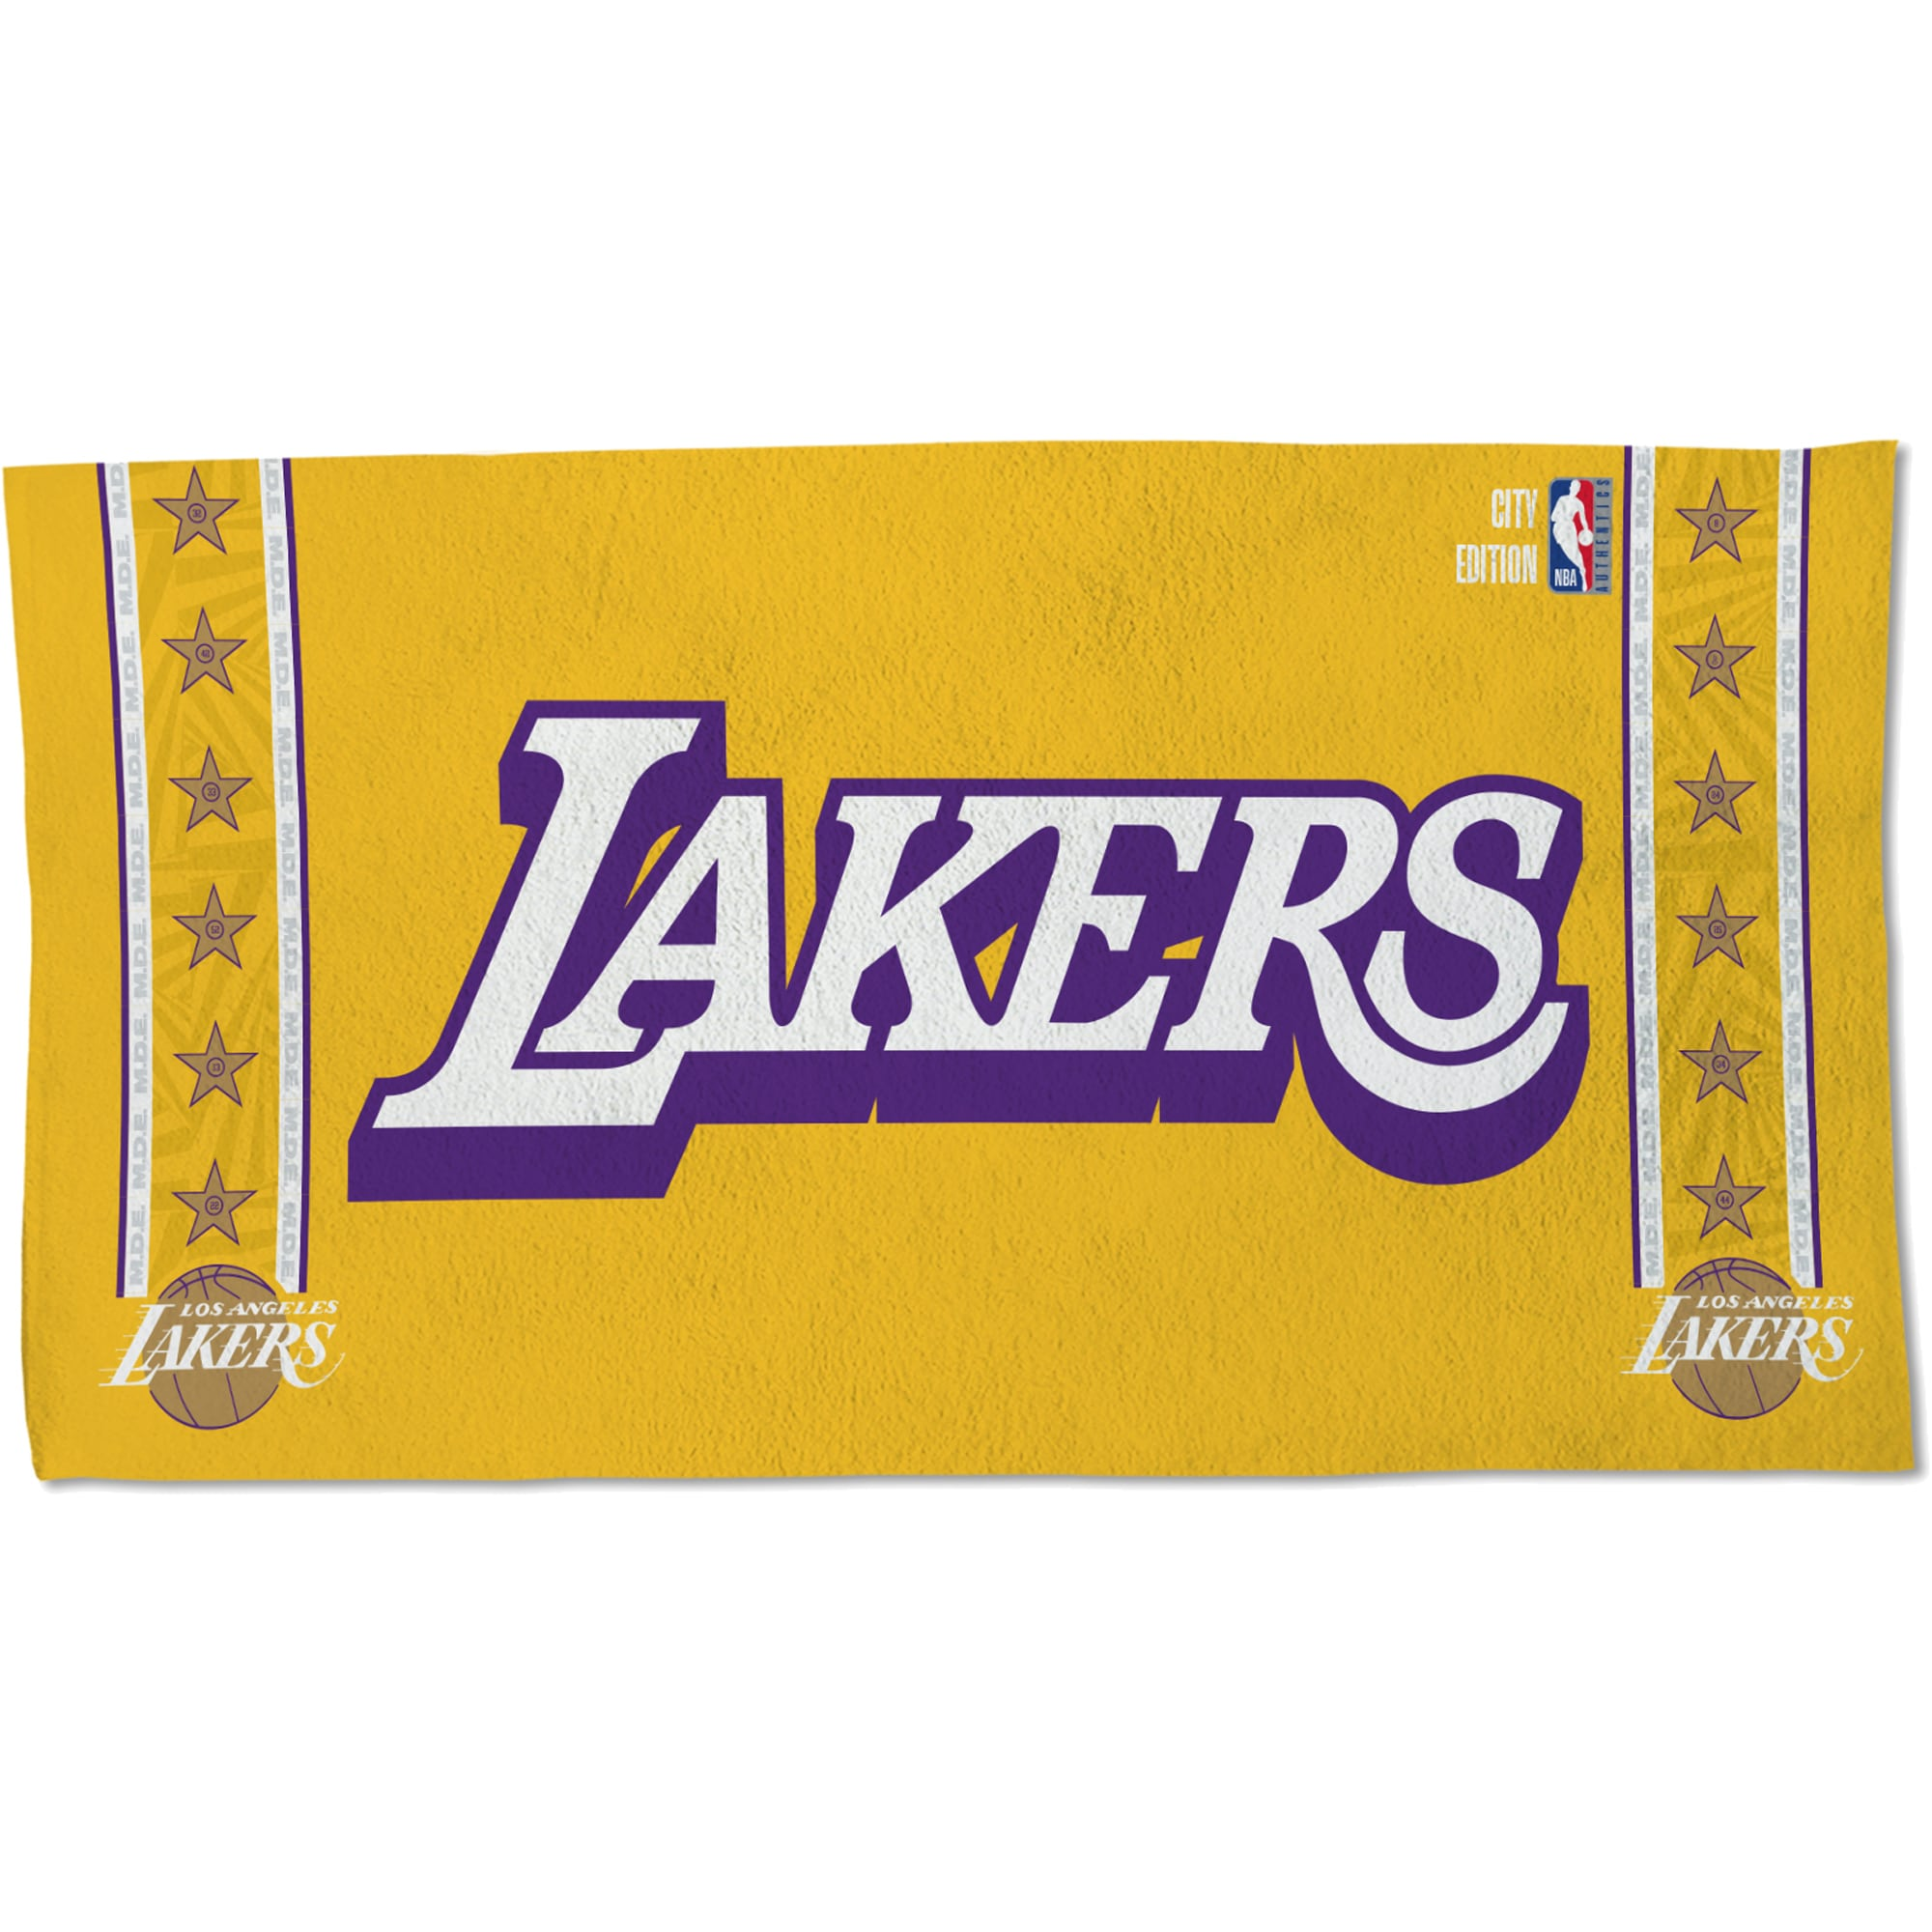 Los Angeles Lakers WinCraft 2019/20 City Edition 22'' x 42'' Official Locker Room Towel